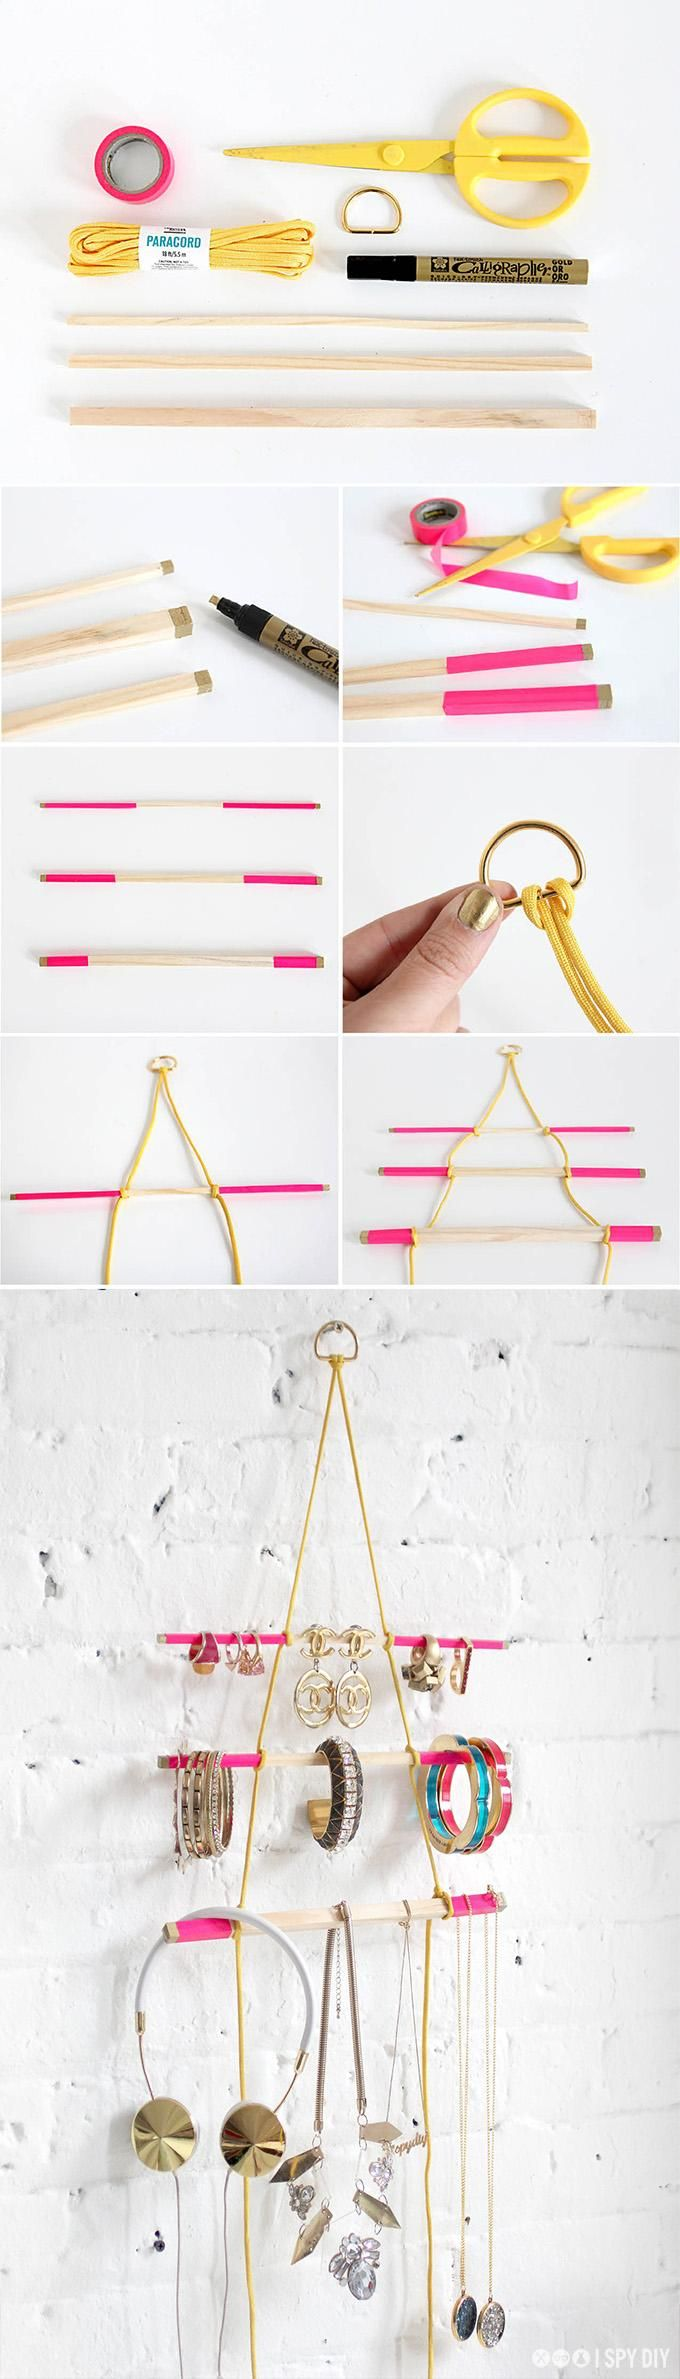 Make a genius jewelry organizer with a few dowels and some paracord. #DIY